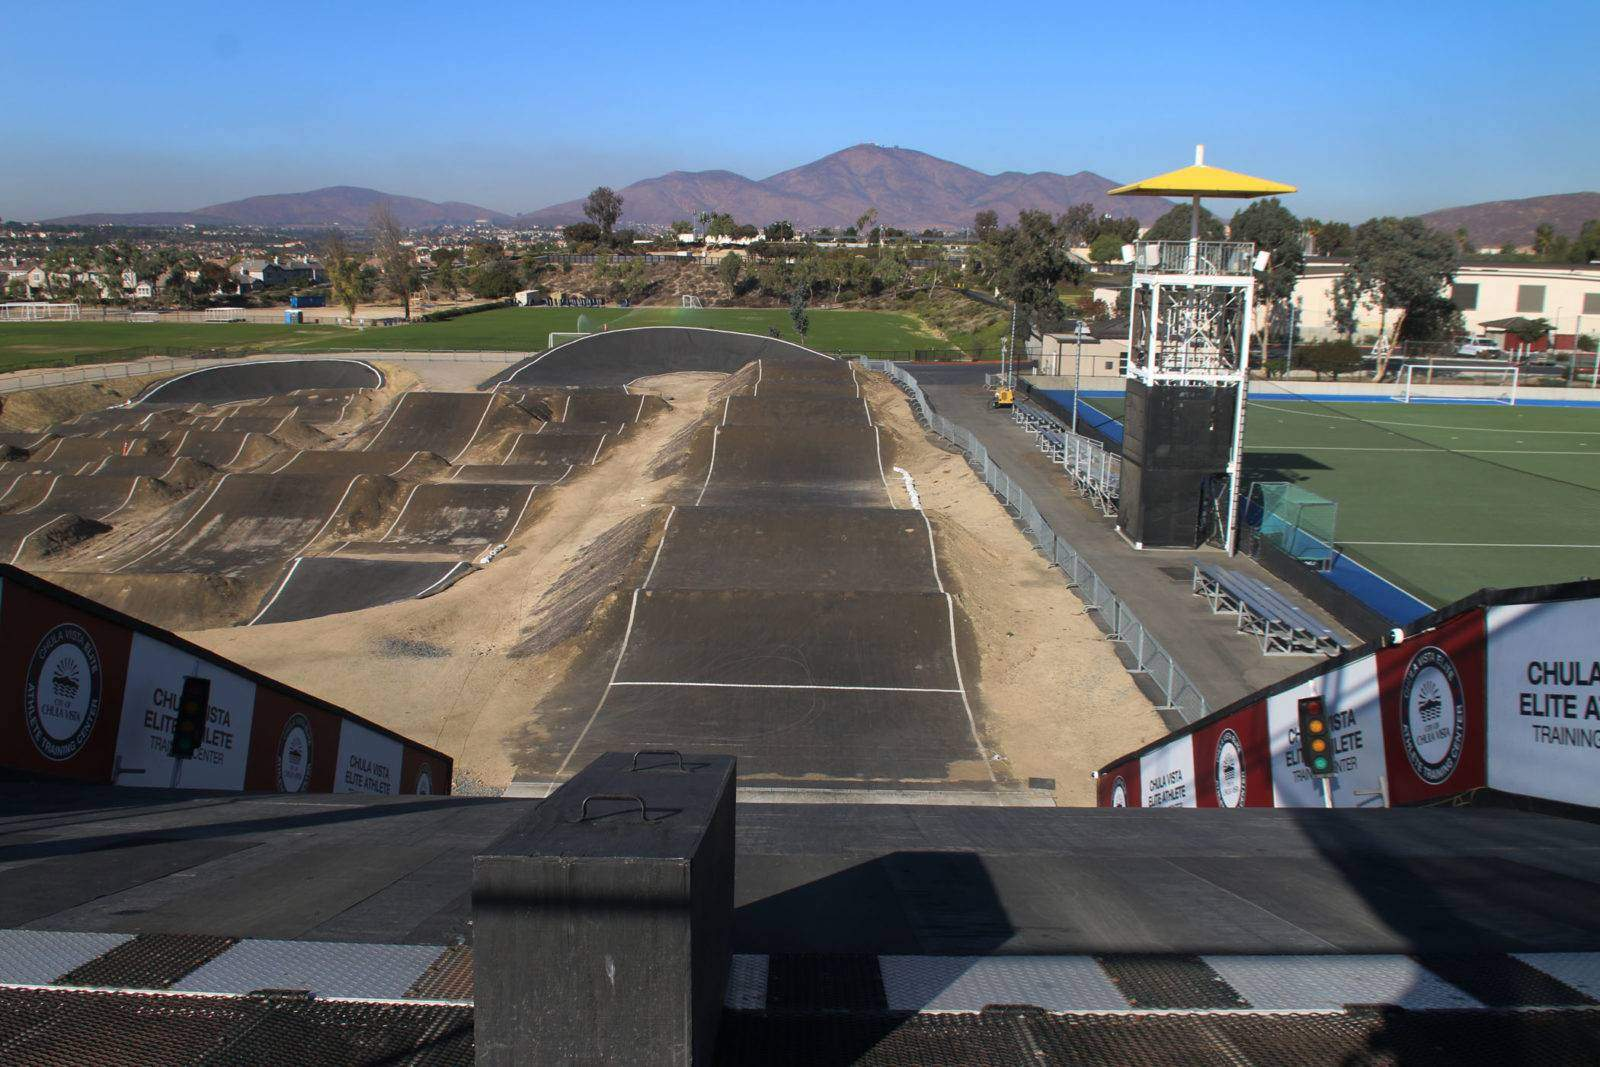 Check out San Diego's very own U.S. training center for Olympic athletes located in Chula Vista!